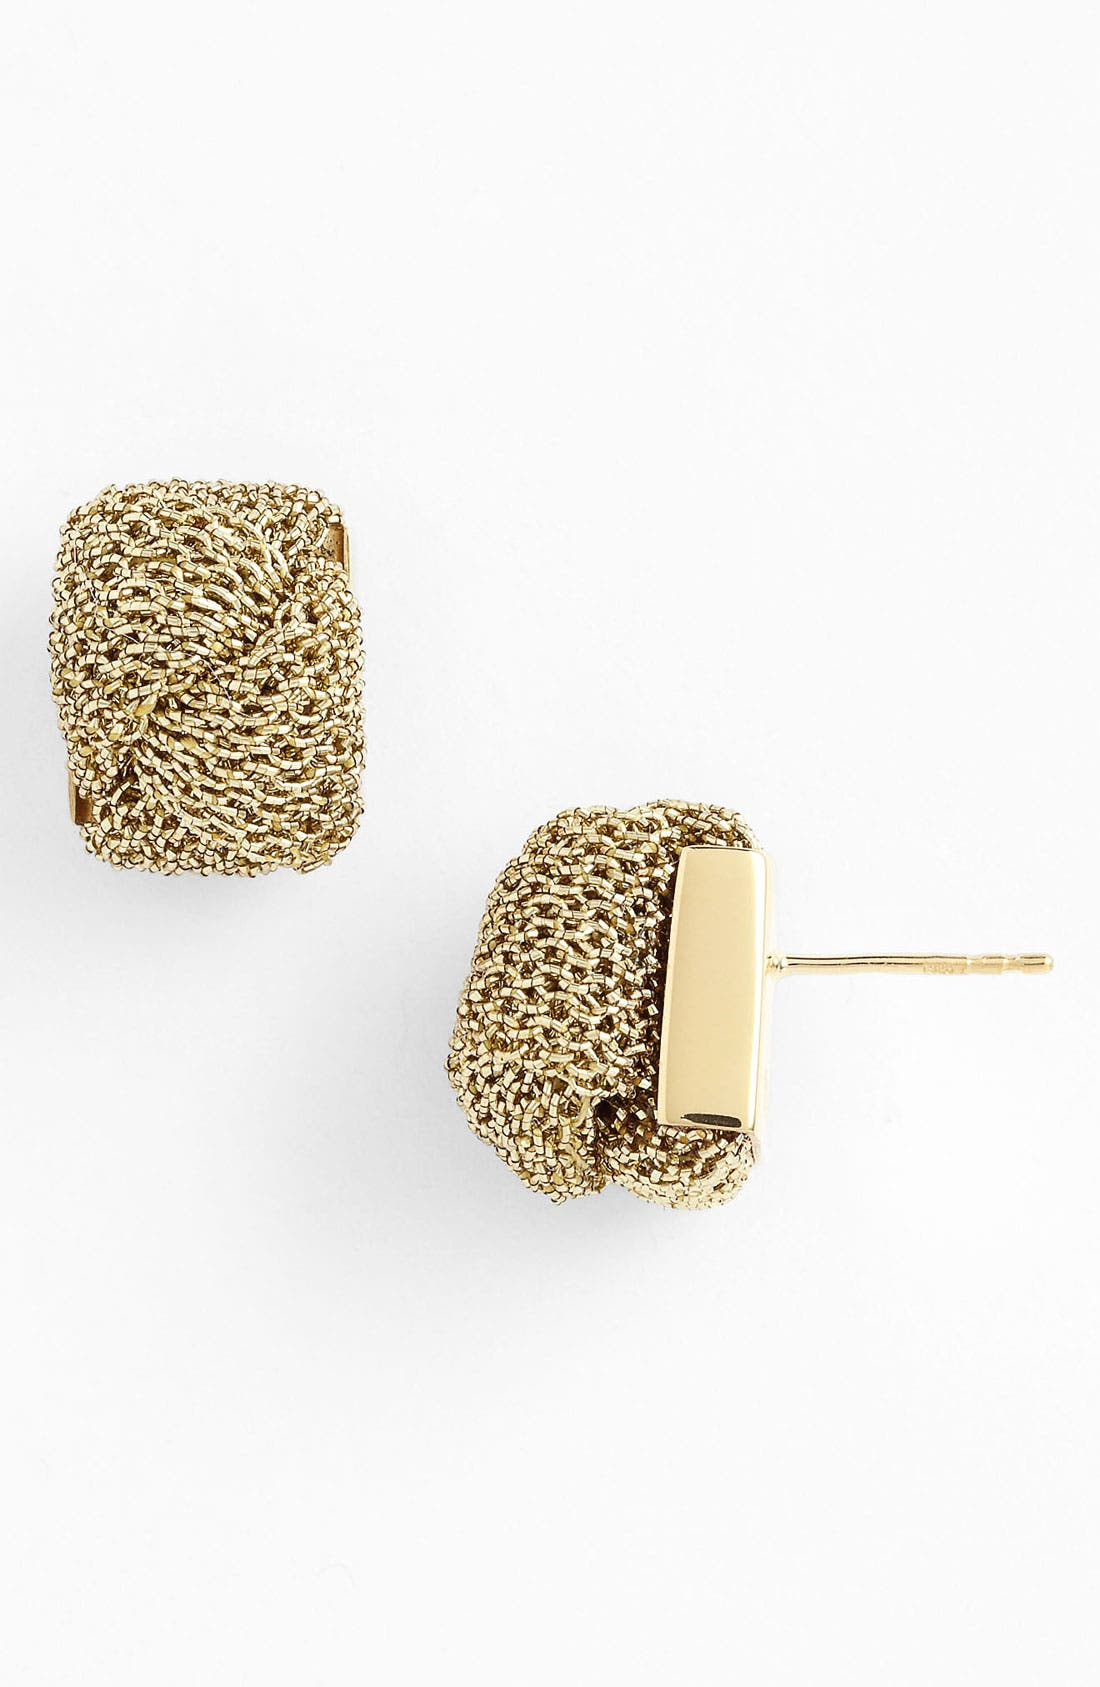 Main Image - Adami & Martucci 'Mesh' Stud Earrings